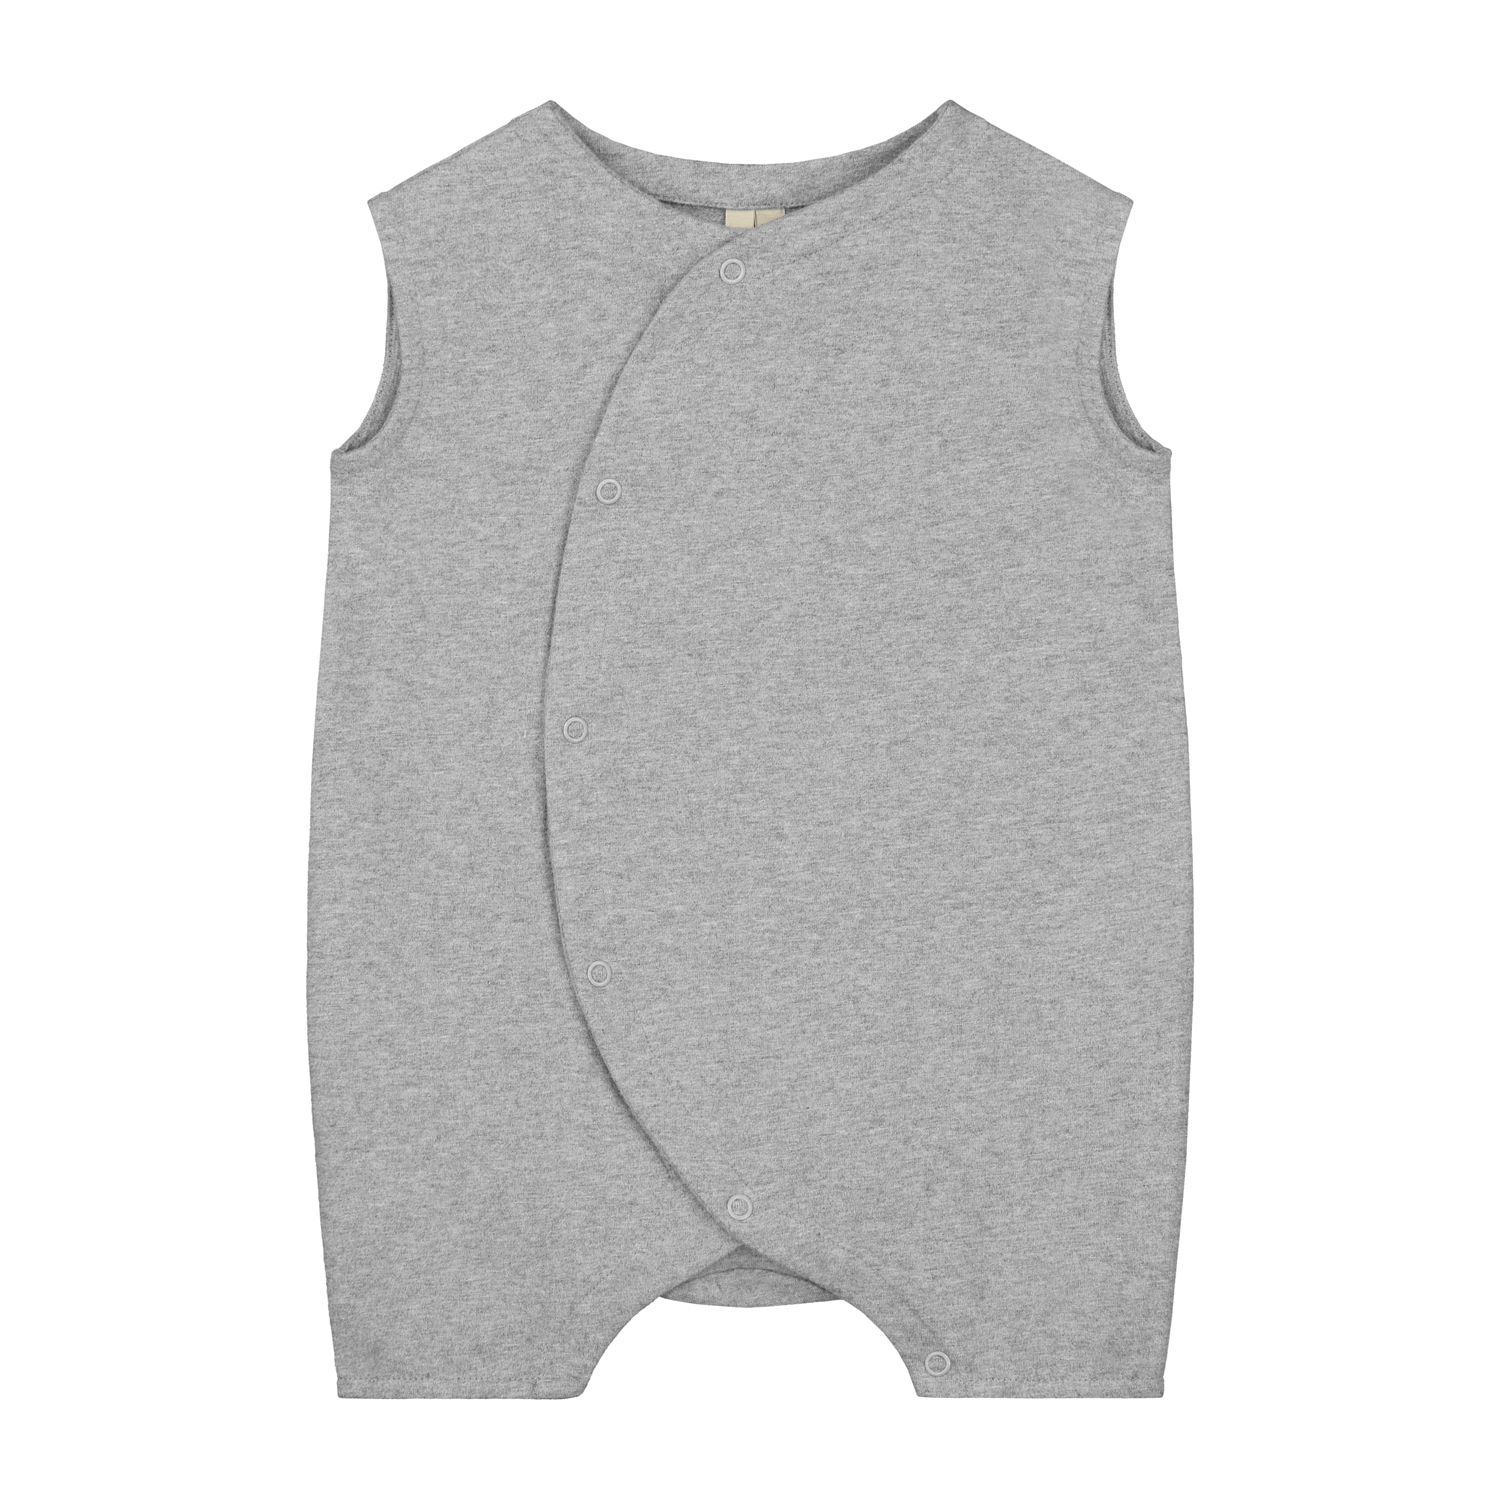 gray label baby grow with snaps grey melange